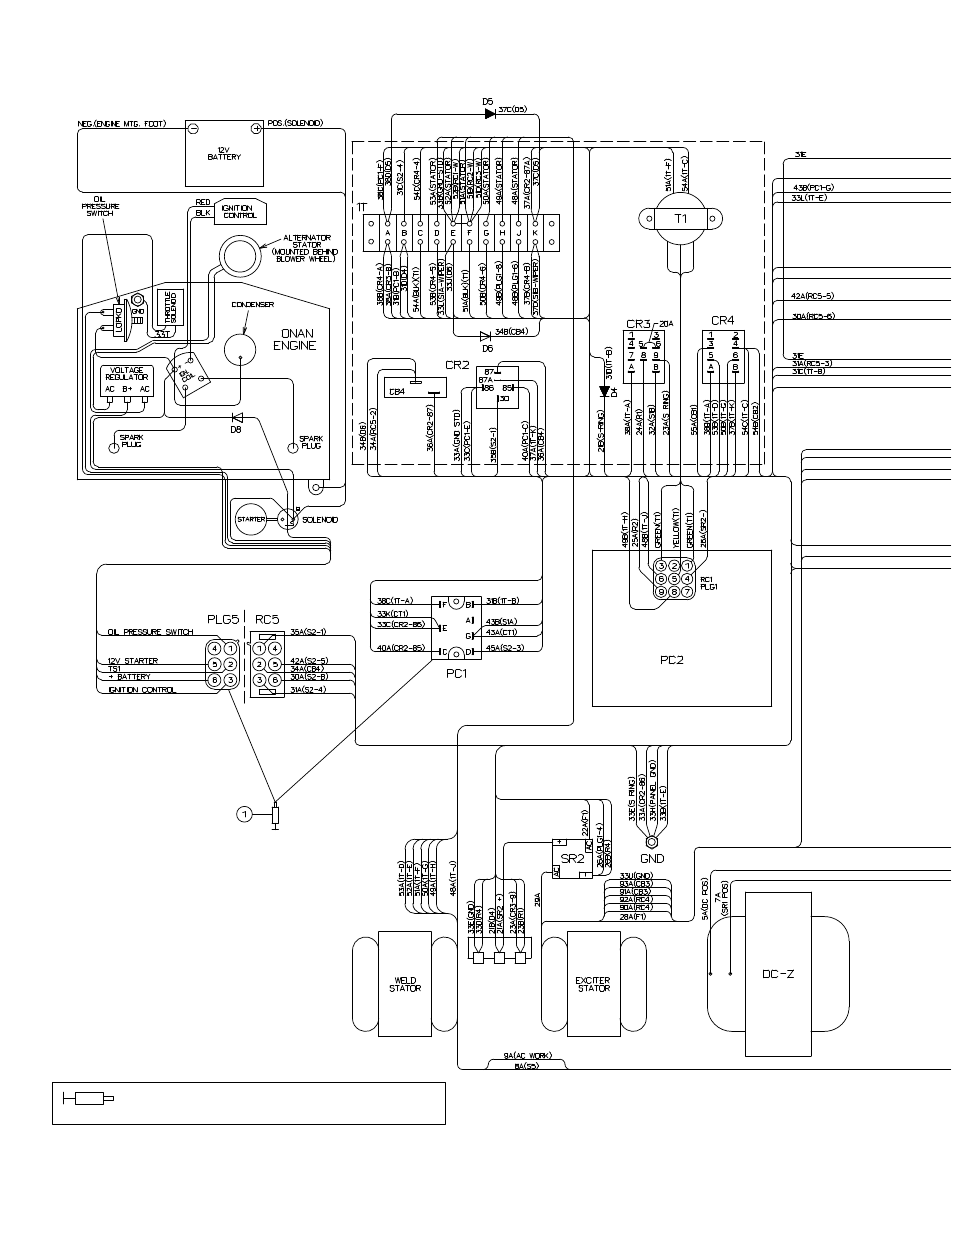 Nordyne E2eb 015hb Thermostat Wiring Diagram Will Images Gallery